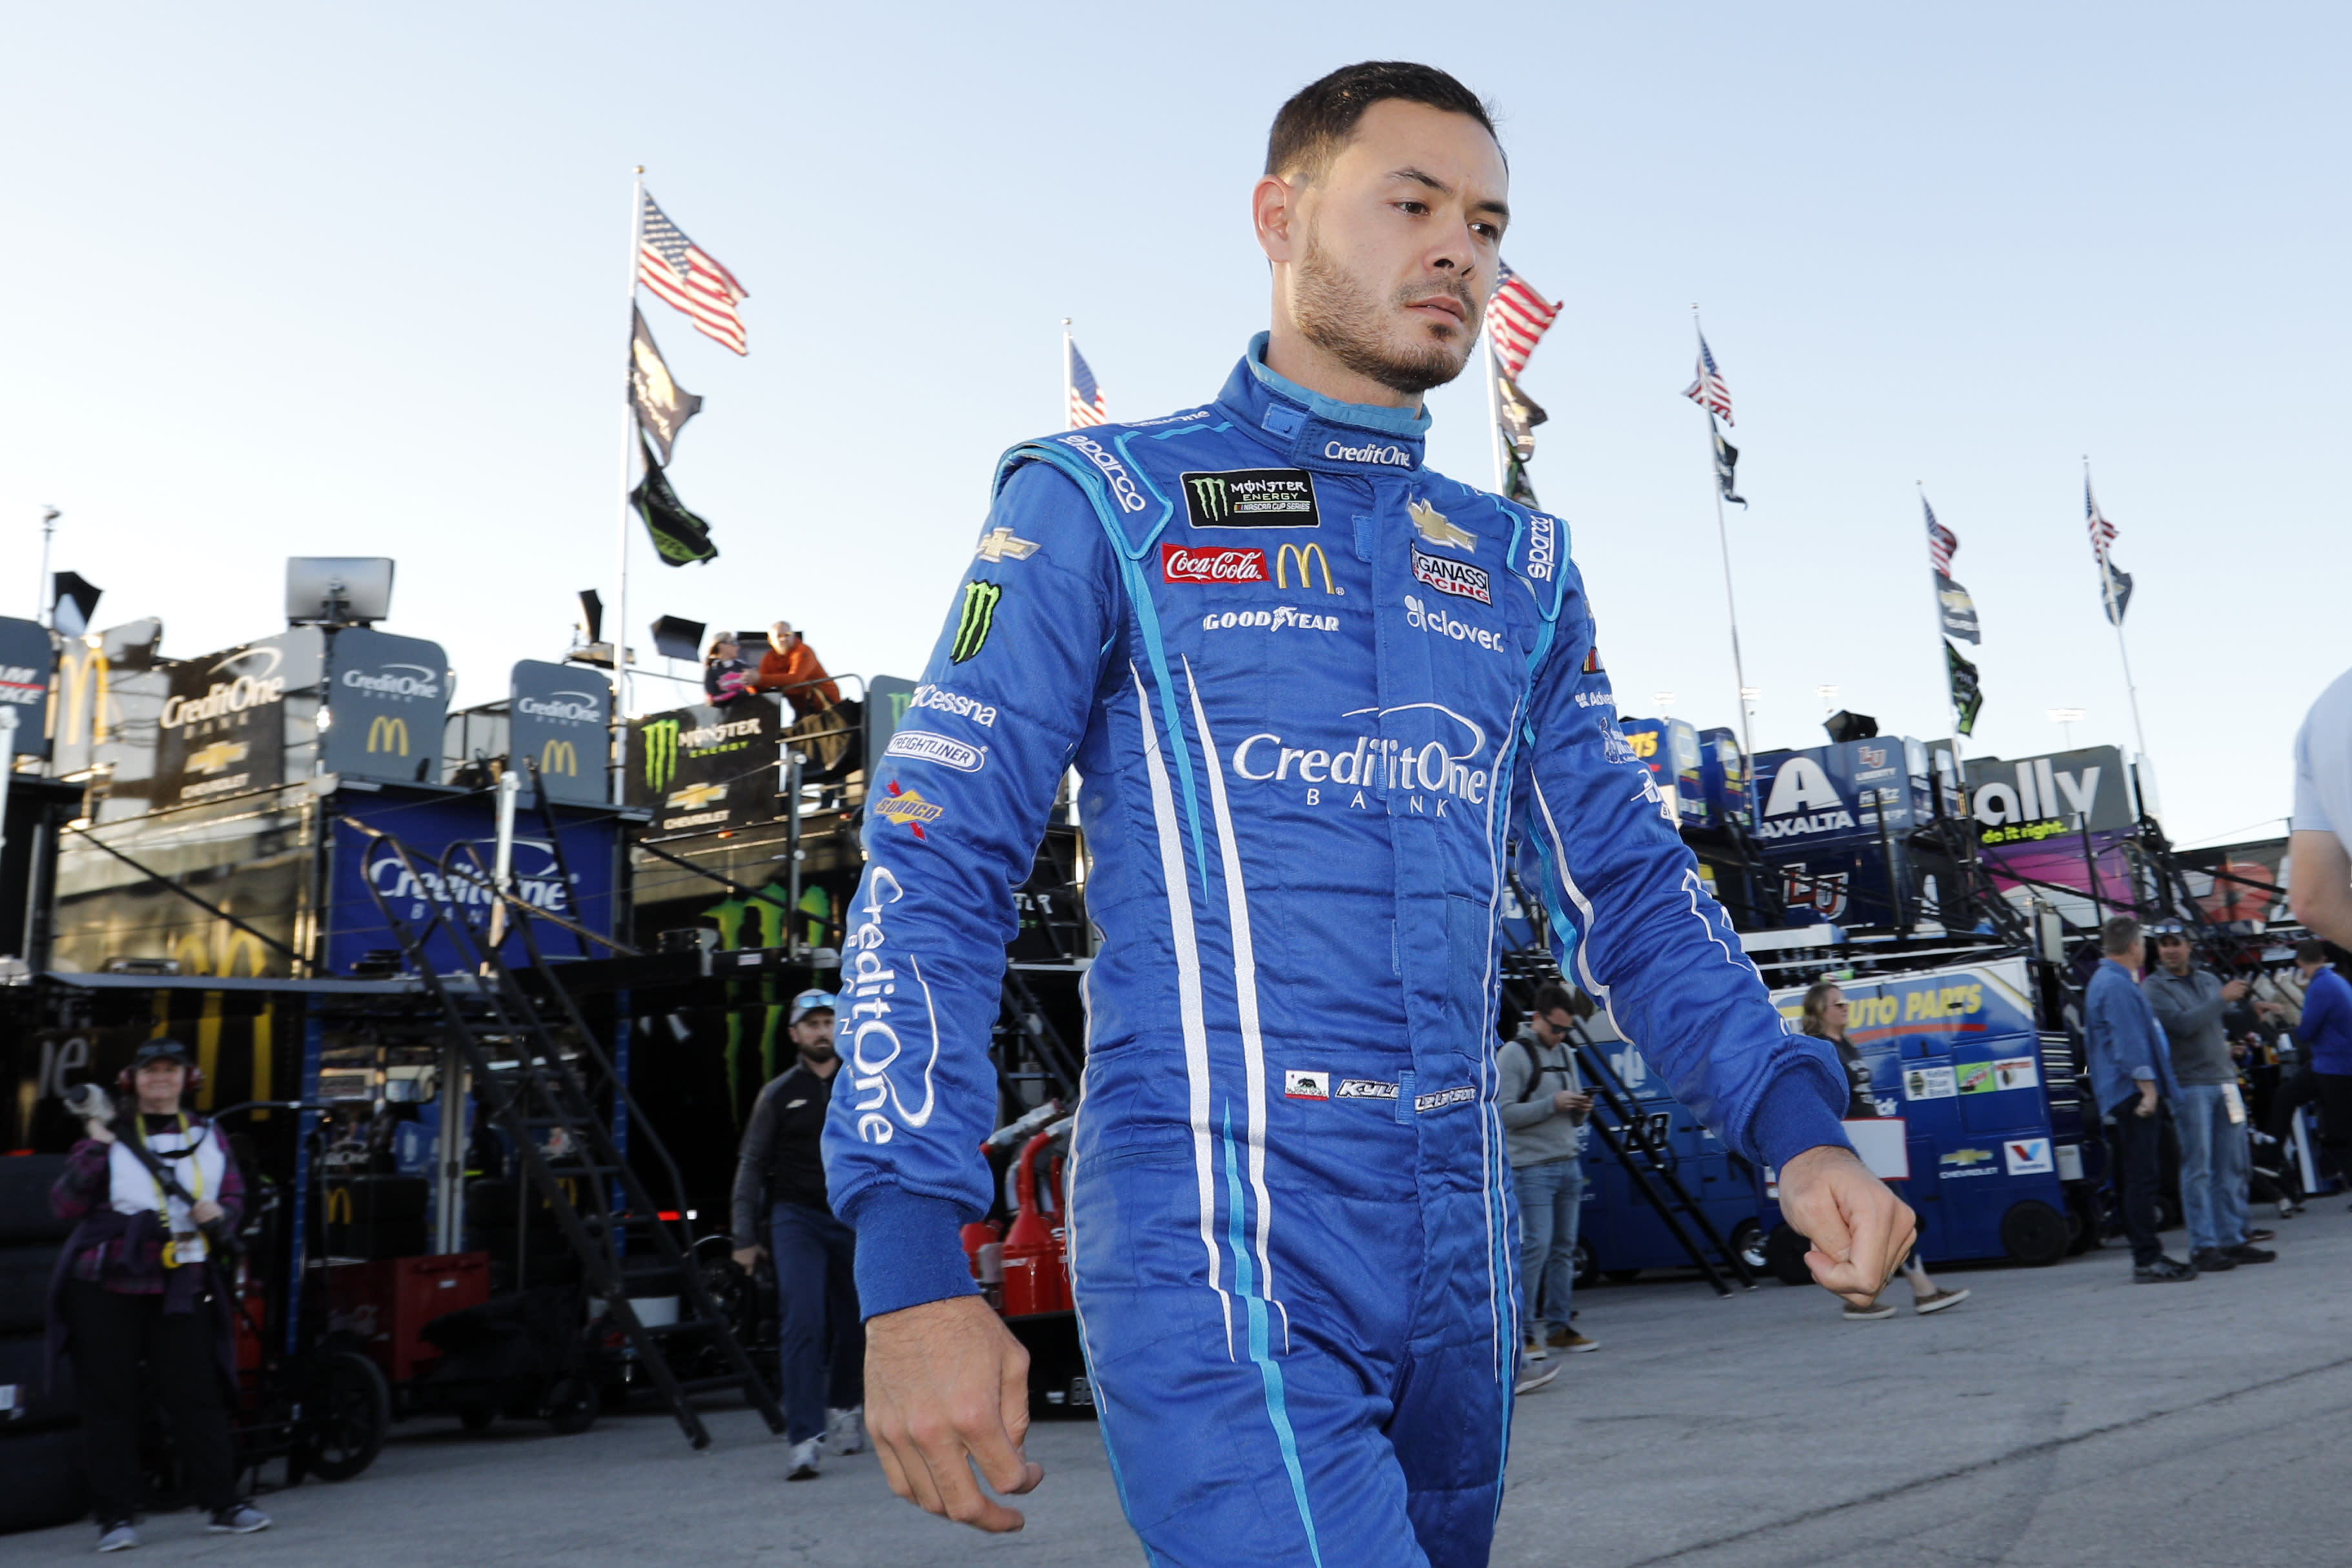 NASCAR driver Kyle Larson uses racial slur during iRacing live stream